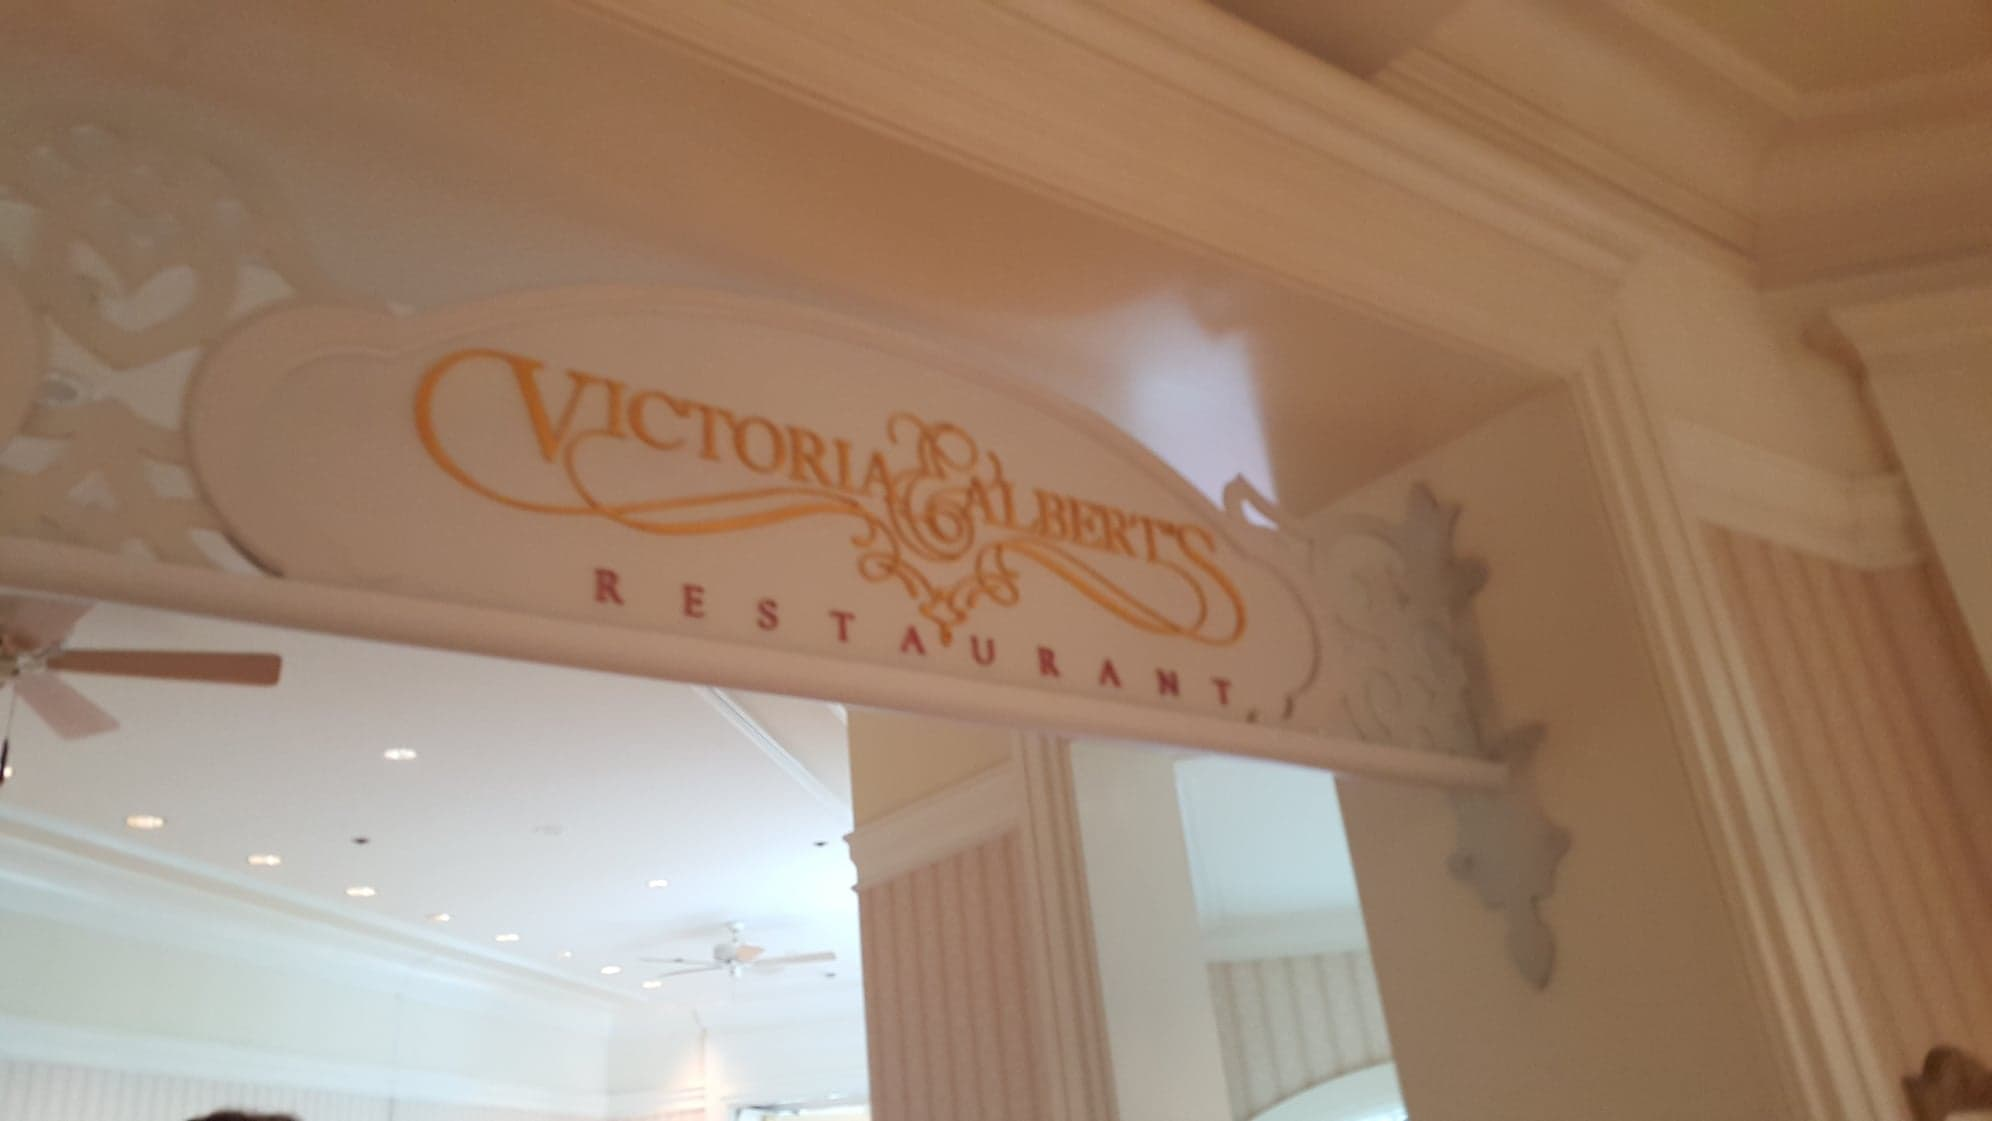 Victoria and Albert's Restaurant is An Extraordinary Dining Experience